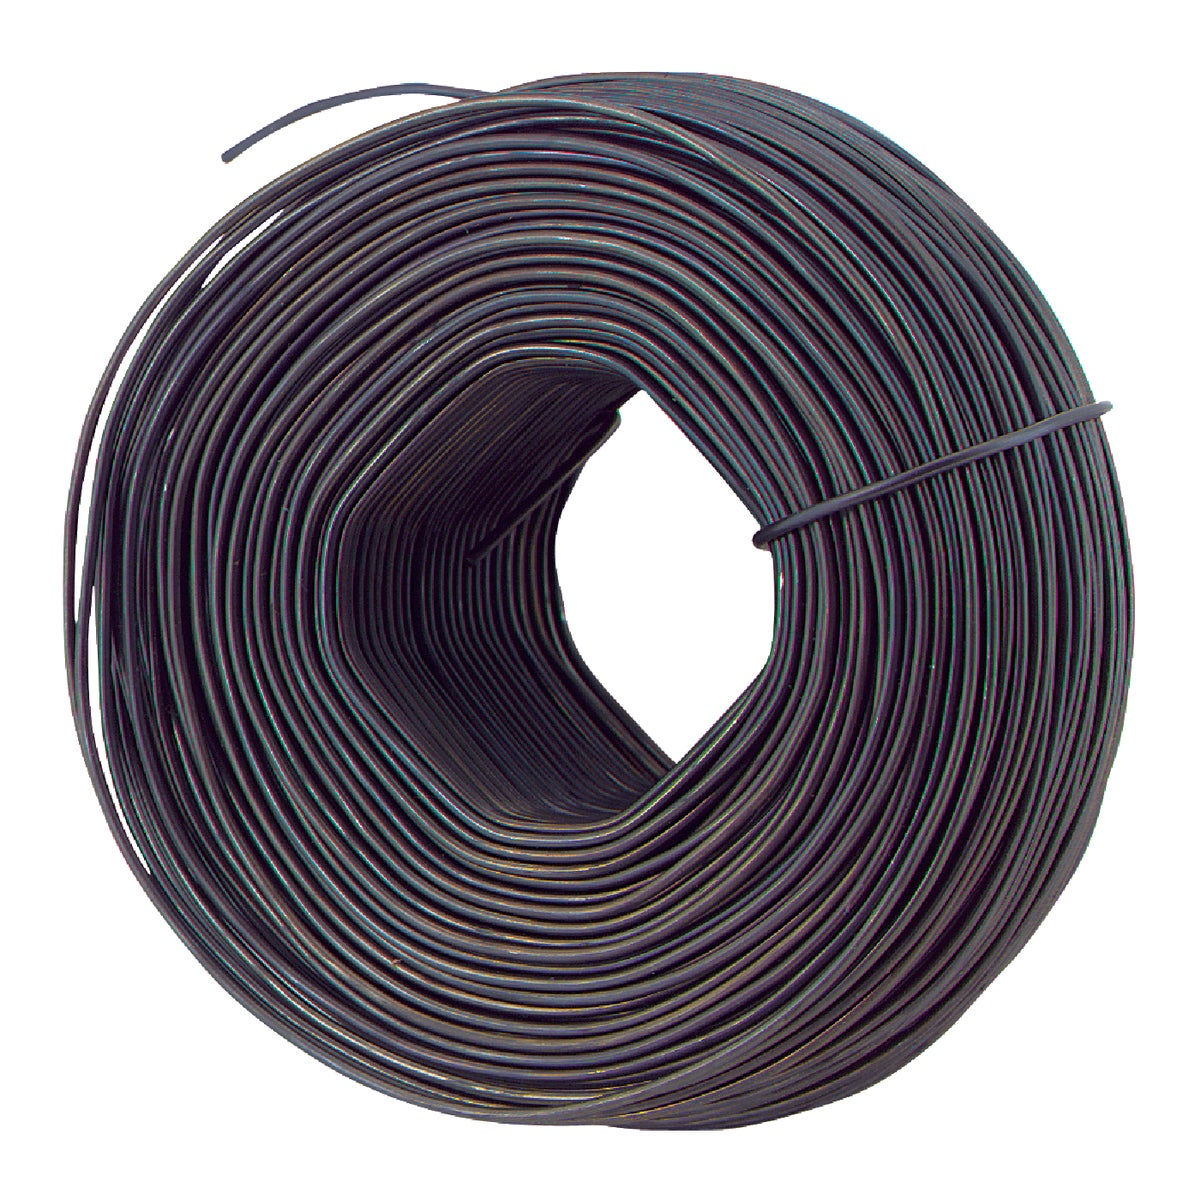 3.5LB 16GA REBAR TIEWIRE - TW16312I by Primesource